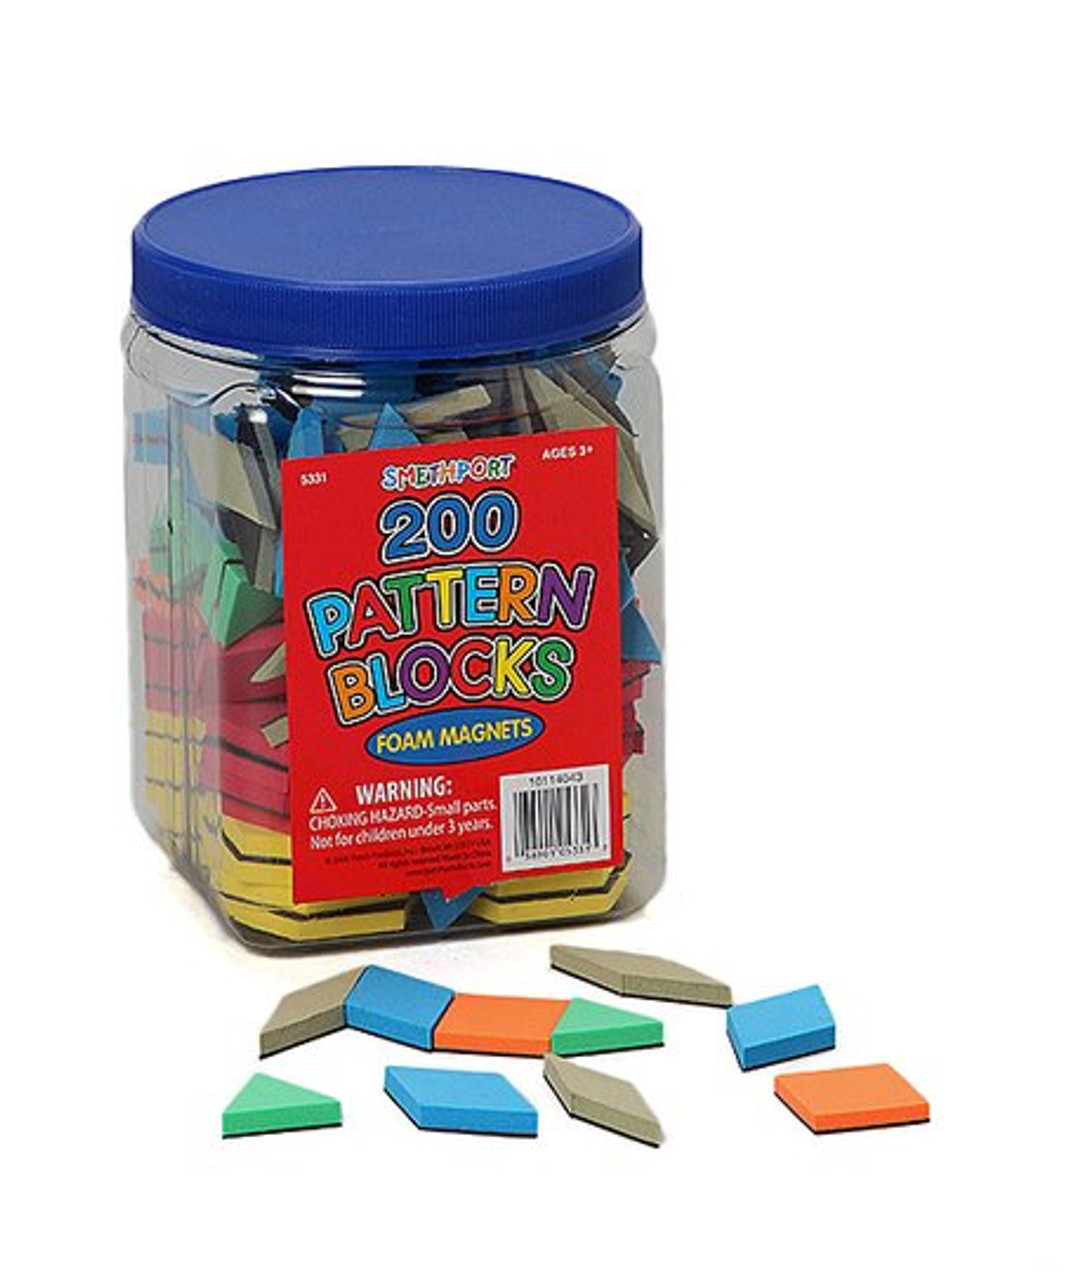 Pattern Blocks Magnets 200 pieces